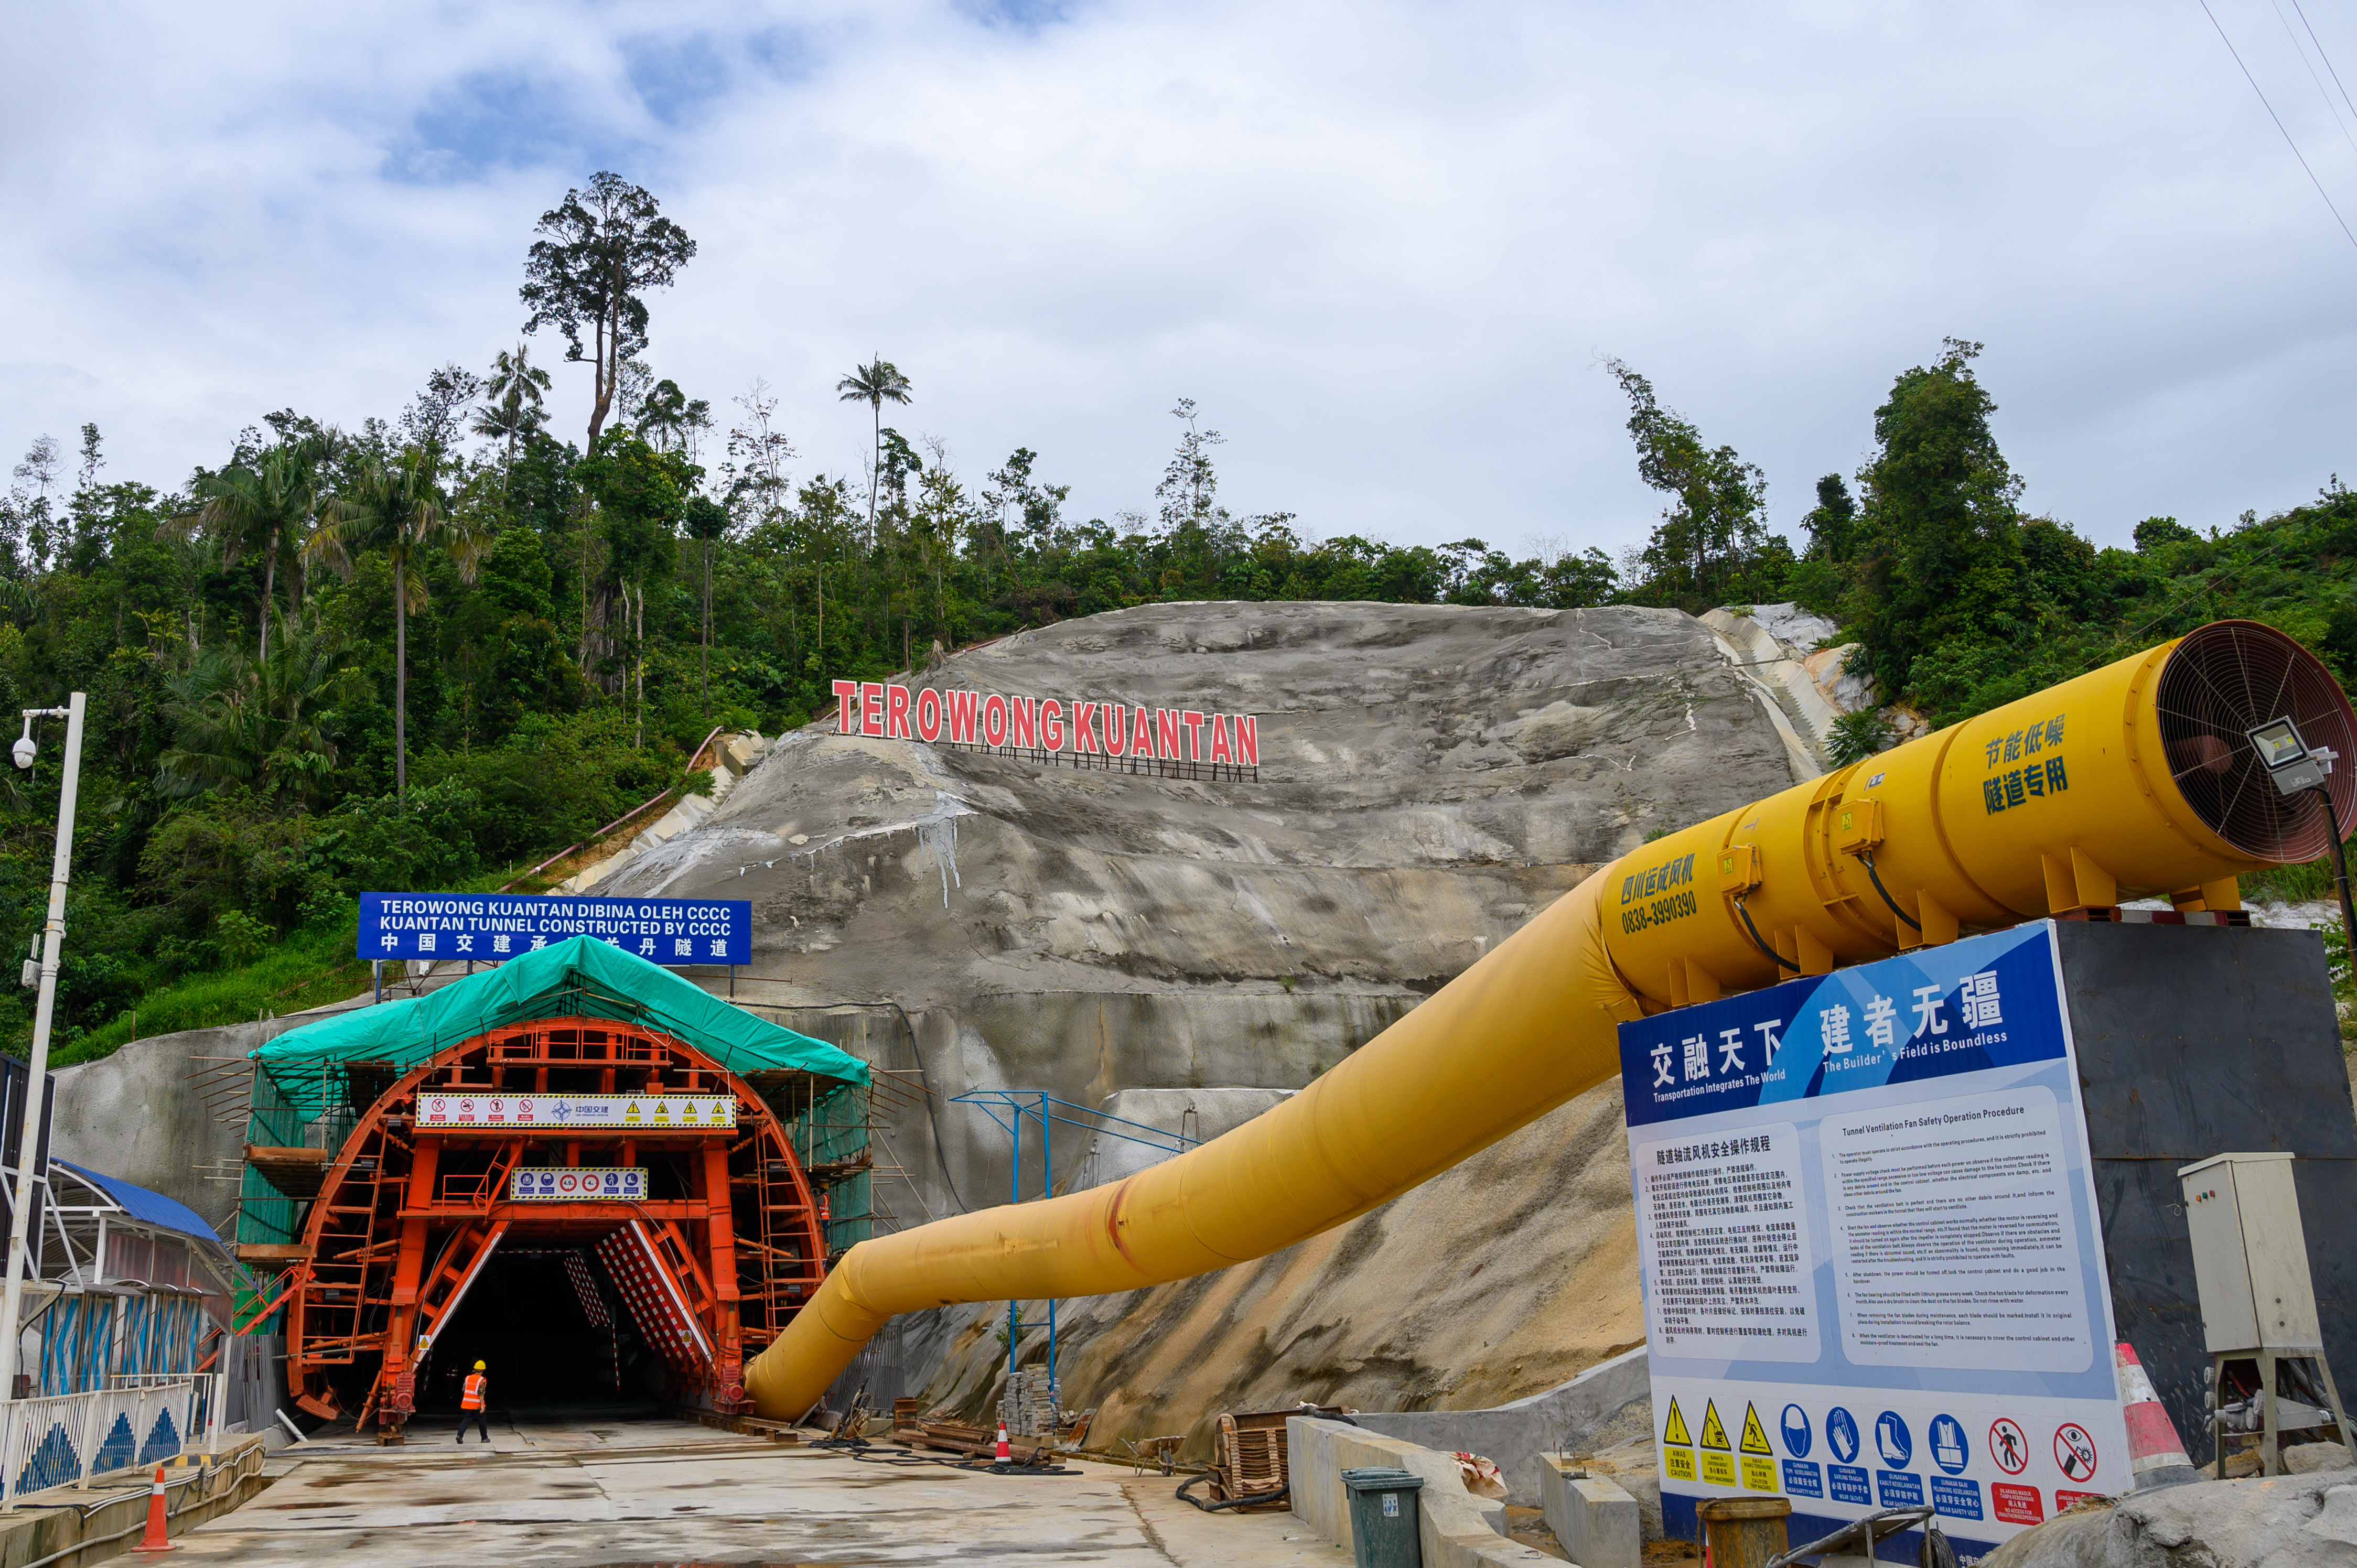 Xinhua Headlines: Railway megaproject ECRL creating new opportunities in Malaysia as construction picks up - Xinhua | English.news.cn